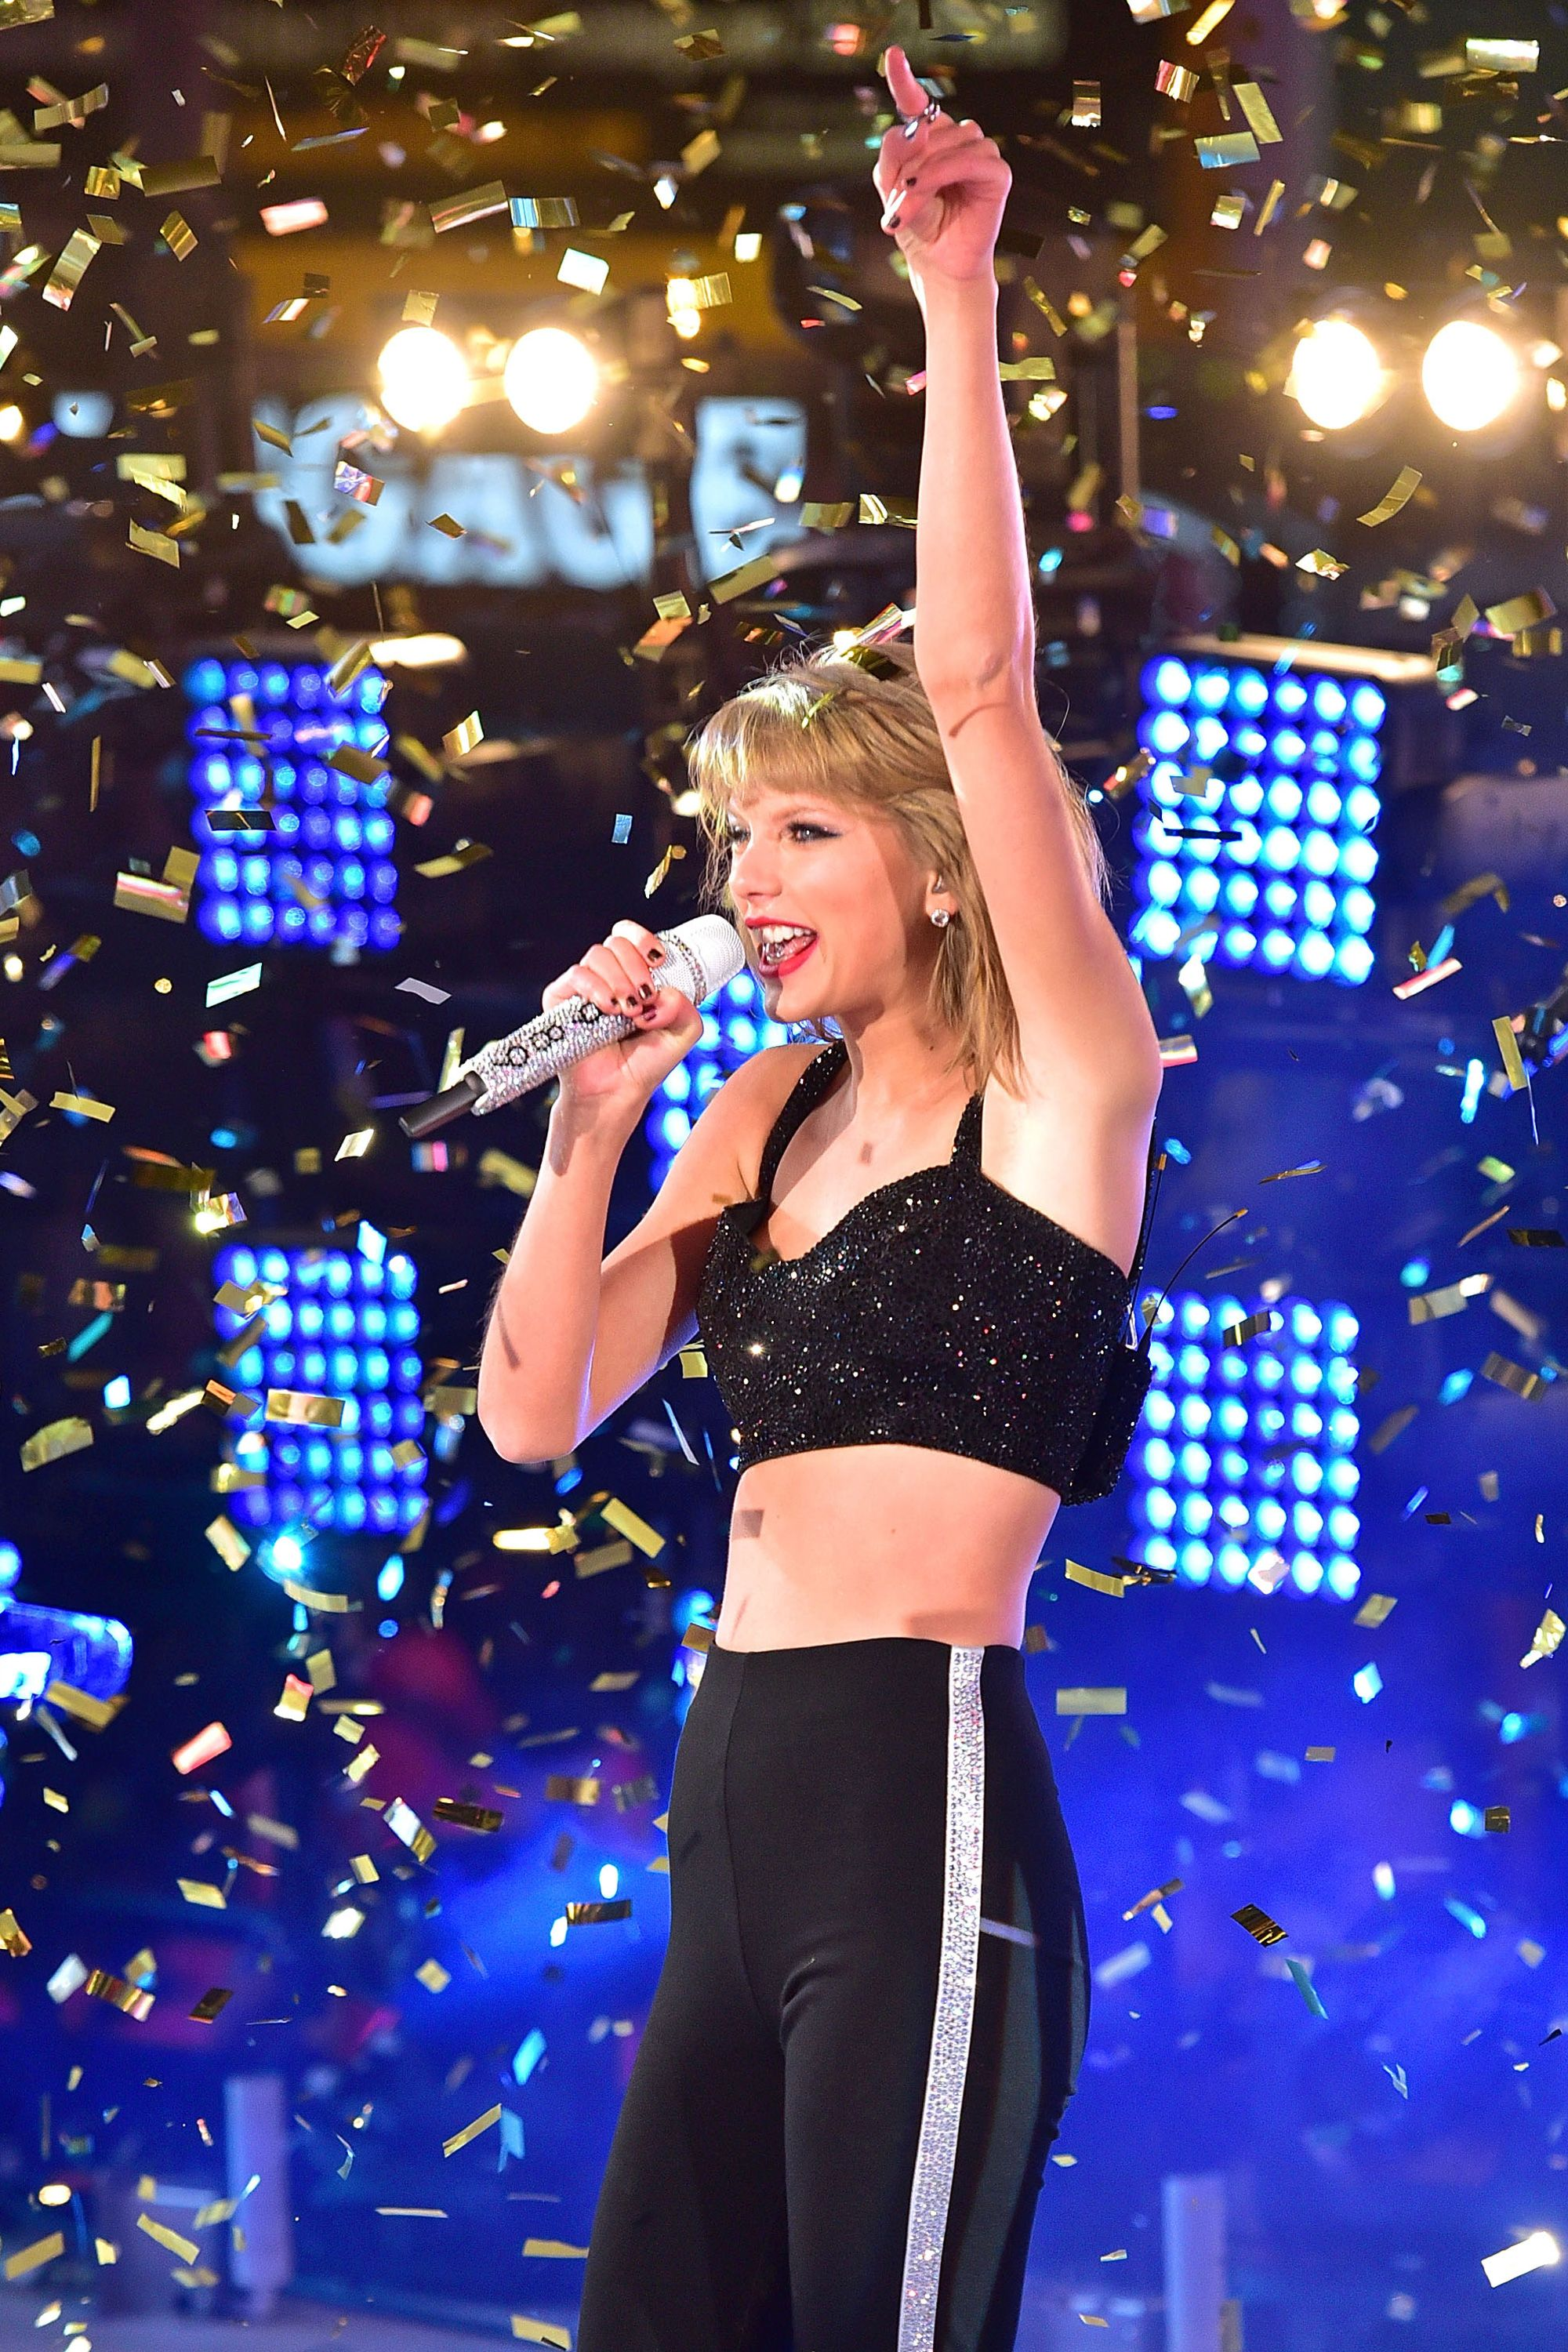 Taylor Swift performs during New Year's Eve 2015 in Times Square on Dec. 31, 2014.